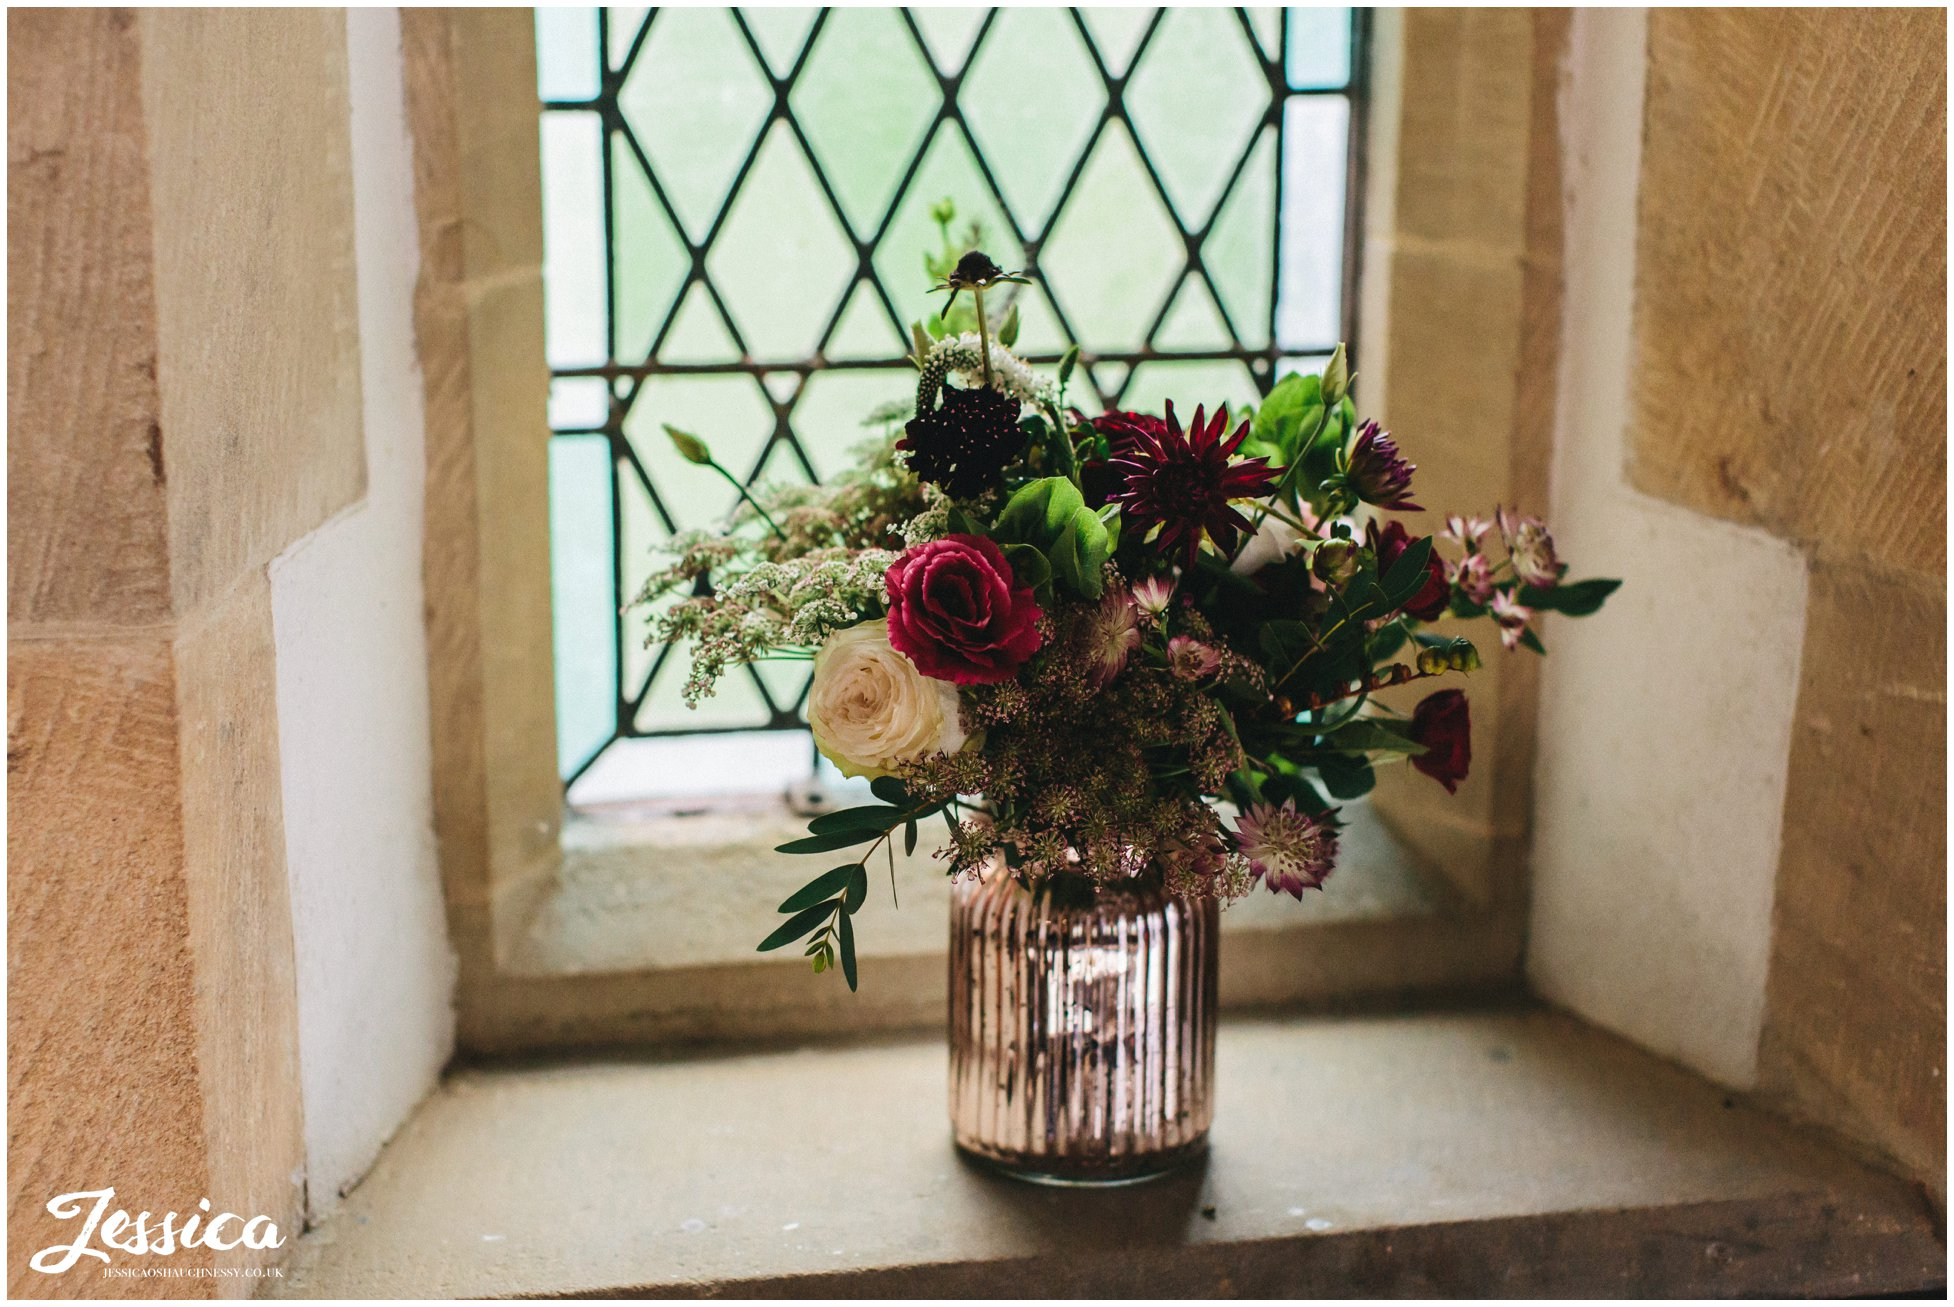 floral displays decorate the windows